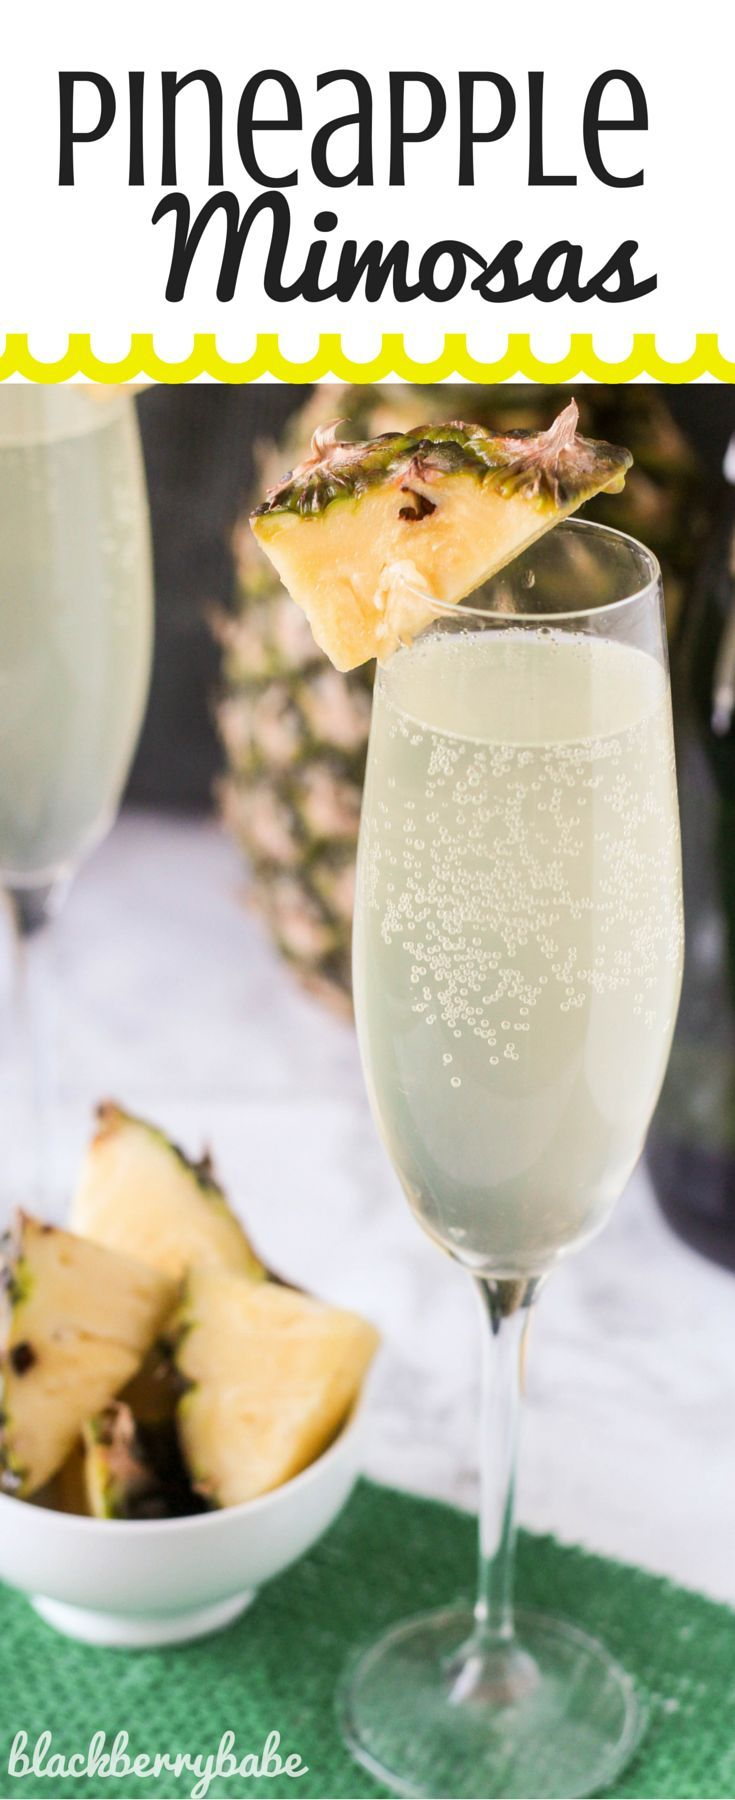 Pineapple Mimosas | It is a fruity, tropical twist on traditional mimosas! So easy, with just three common ingredients. /michelle_goth/